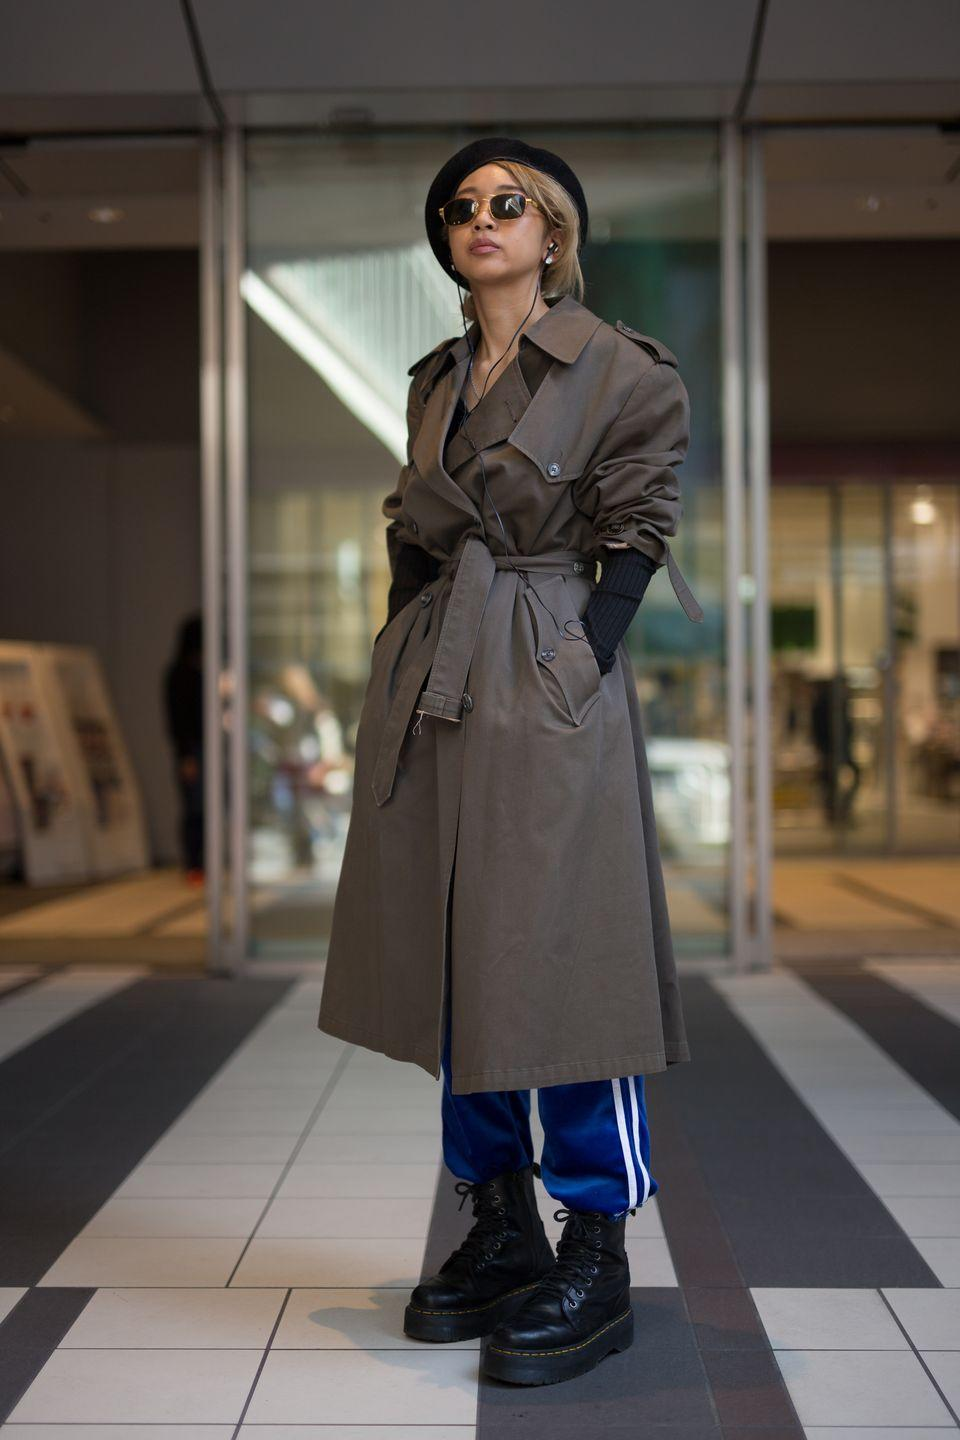 """<p>Give your go-to track pants an instant refresh by styling them with a well-tailored trench coat and trendy flat-form boots. </p><p><strong>Get the look: Tory Burch</strong> Geo-T wide-leg track pants, $158, <a href=""""https://go.skimresources.com?id=74968X1525079&xs=1&url=https%3A%2F%2Fwww.toryburch.com%2Fgeo-t-wide-leg-track-pants%2F59819.html%3Fcolor%3D359%26size%3DS%26utm_source%3Dgoogle%26utm_medium%3Dcpc%26adpos%3D%26scid%3Dscplp192485387544%26sc_intid%3D192485387544%26gclid%3DCj0KCQjwreT8BRDTARIsAJLI0KJhb-Ol5Ul5K4UhyKmvz6RyYXvuALdw5T6vZL8_ZDwMuyZ08s6fiscaAuHaEALw_wcB%26gclsrc%3Daw.ds"""" rel=""""nofollow noopener"""" target=""""_blank"""" data-ylk=""""slk:toryburch.com"""" class=""""link rapid-noclick-resp"""">toryburch.com</a>.</p>"""